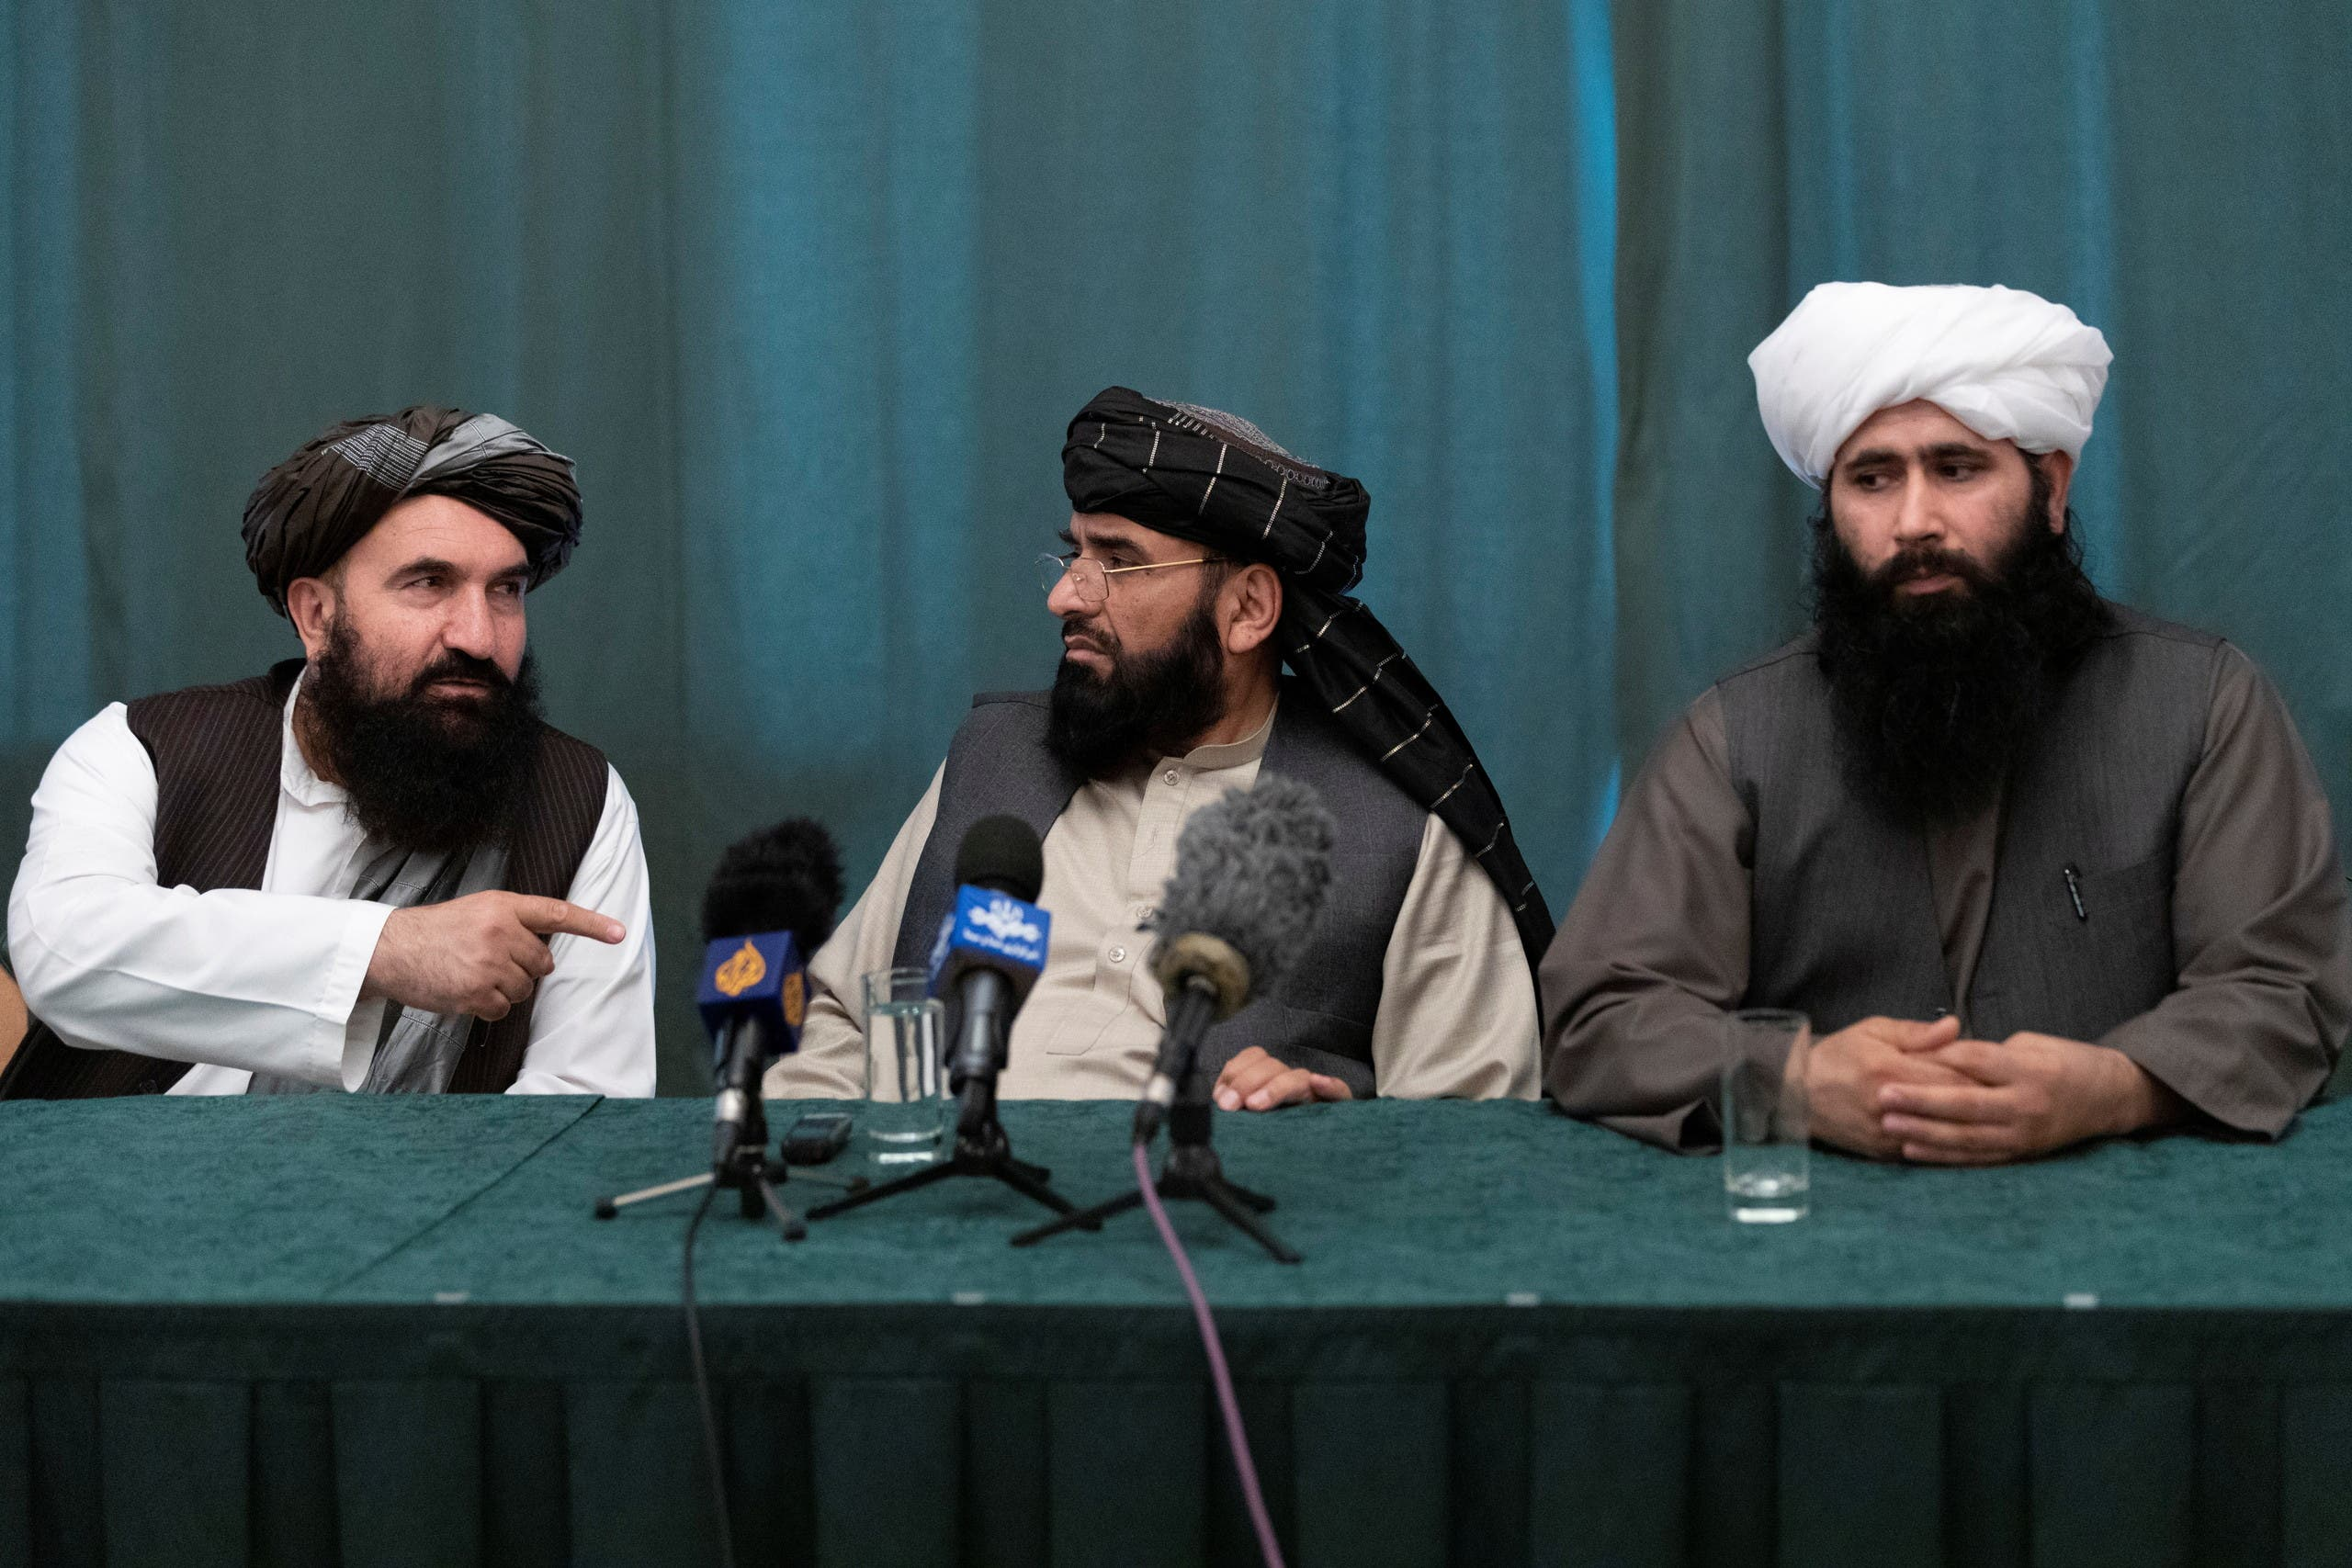 Members of the Taliban delegation: former western Herat Governor Khairullah Khairkhwa, member of the negotiation team Suhail Shaheen and spokesman for the Taliban's political office Mohammad Naeem attend a joint news conference in Moscow, Russia March 19, 2021. (File photo: Reuters)